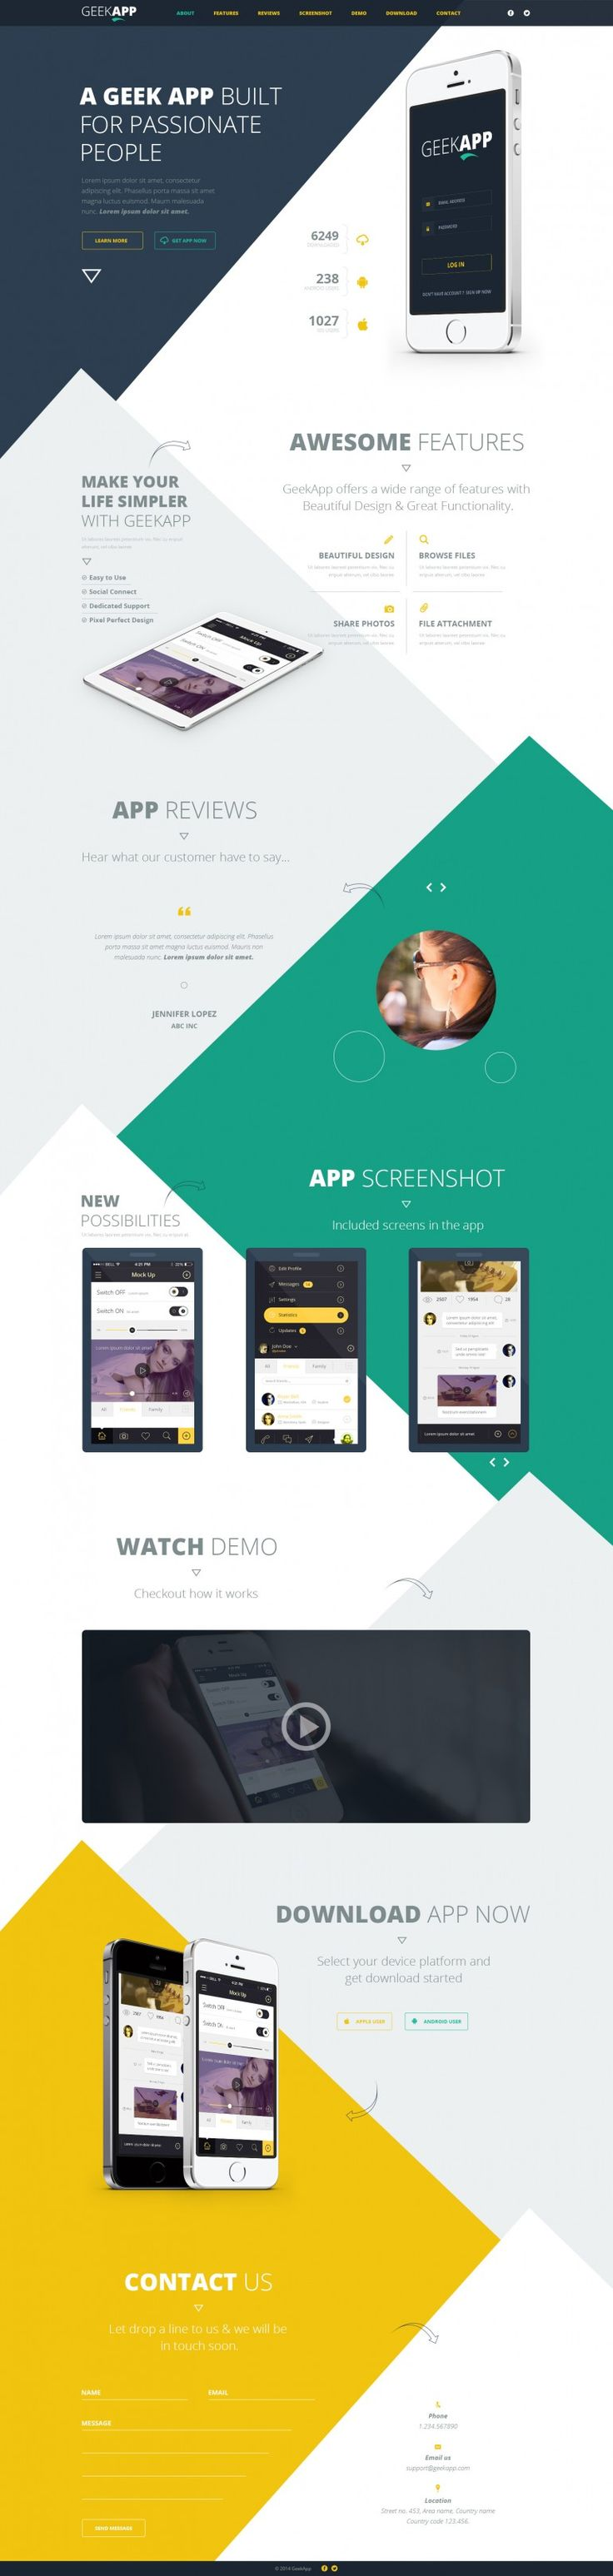 Best 25+ App landing page ideas on Pinterest | Landing pages ...